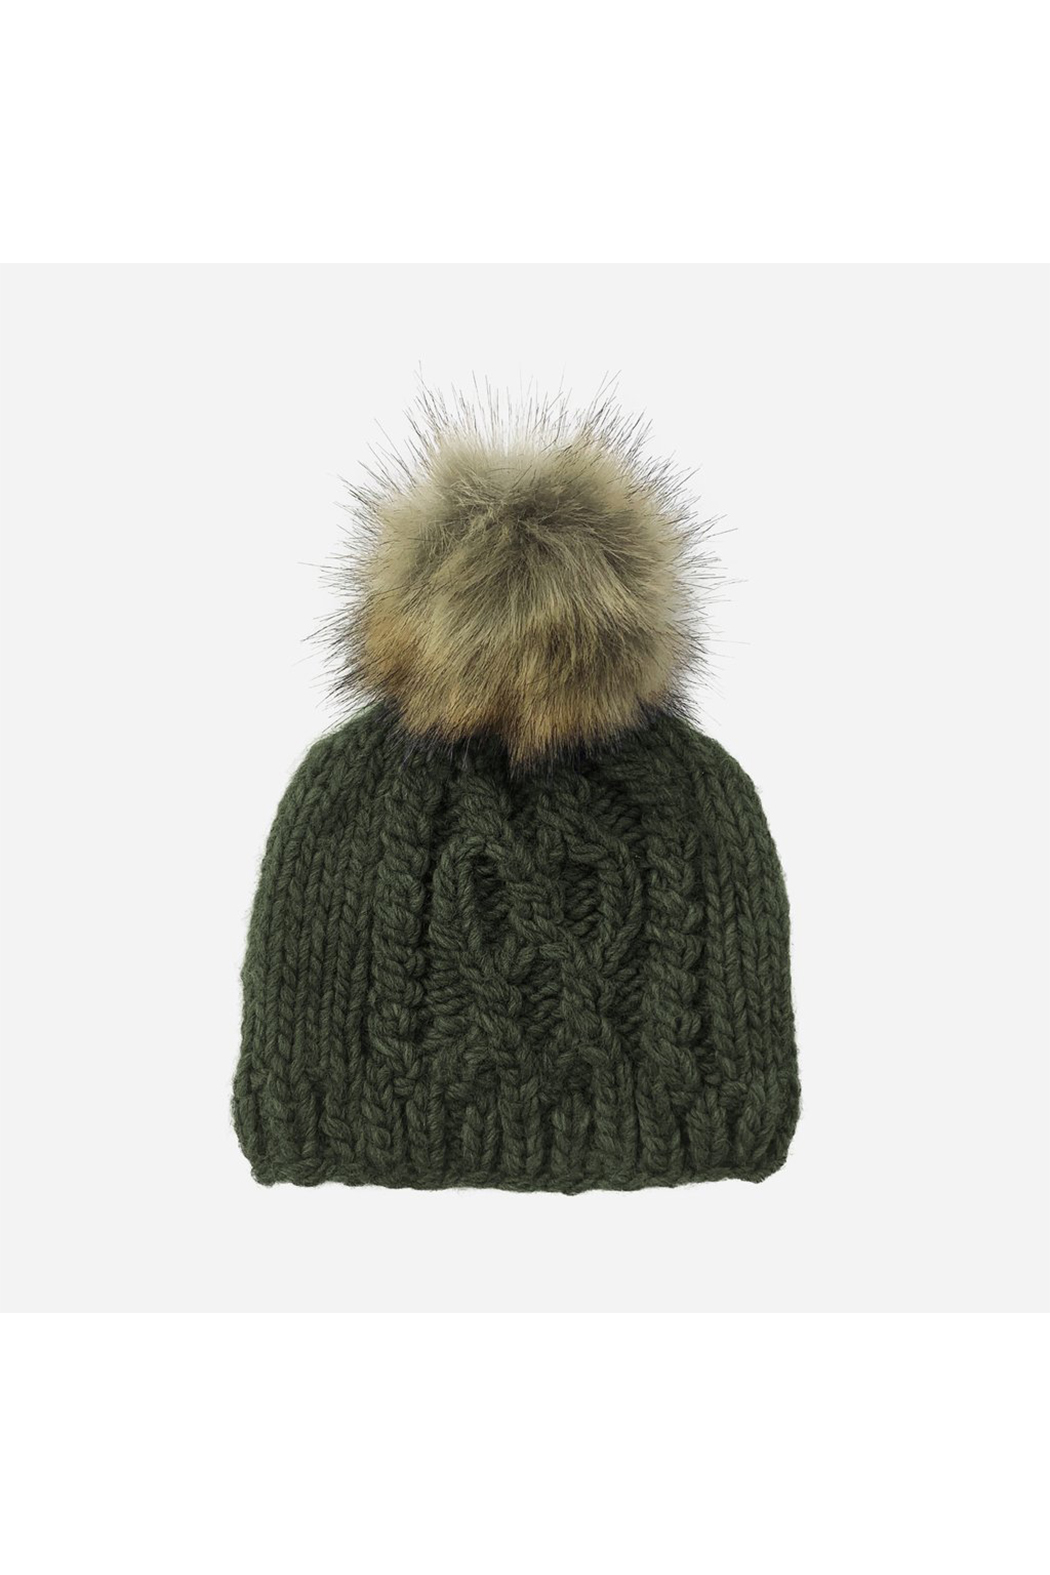 The Blueberry Hill Cable Knit Hat With Fur Pom Pom - Main Image